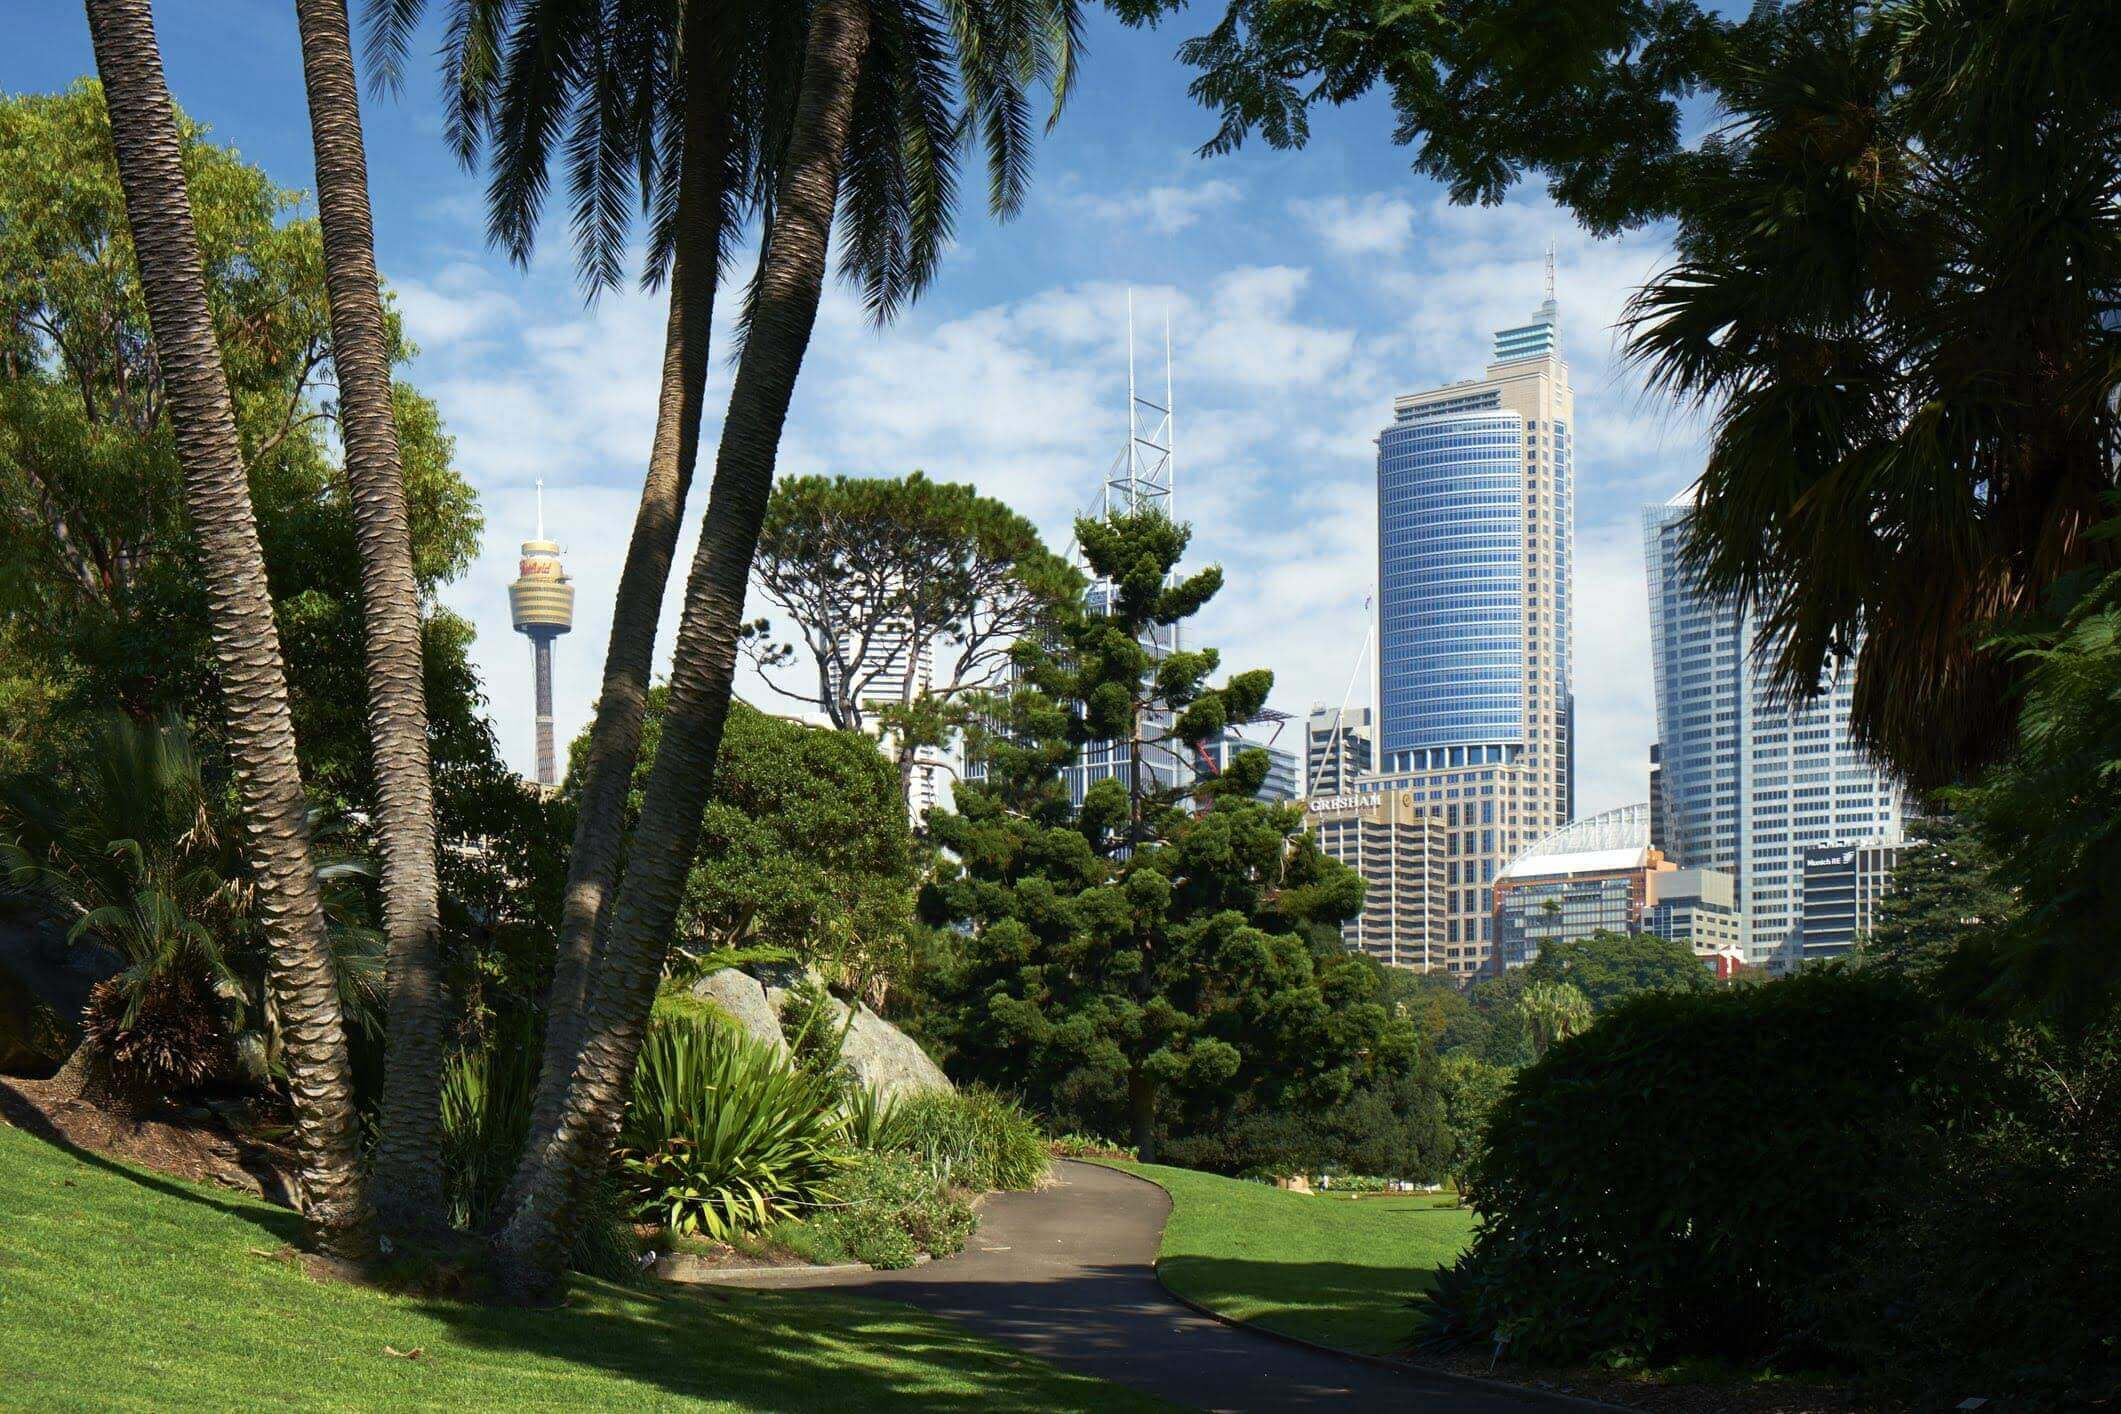 View of the Sydney Botanic gardens with city buildings in background